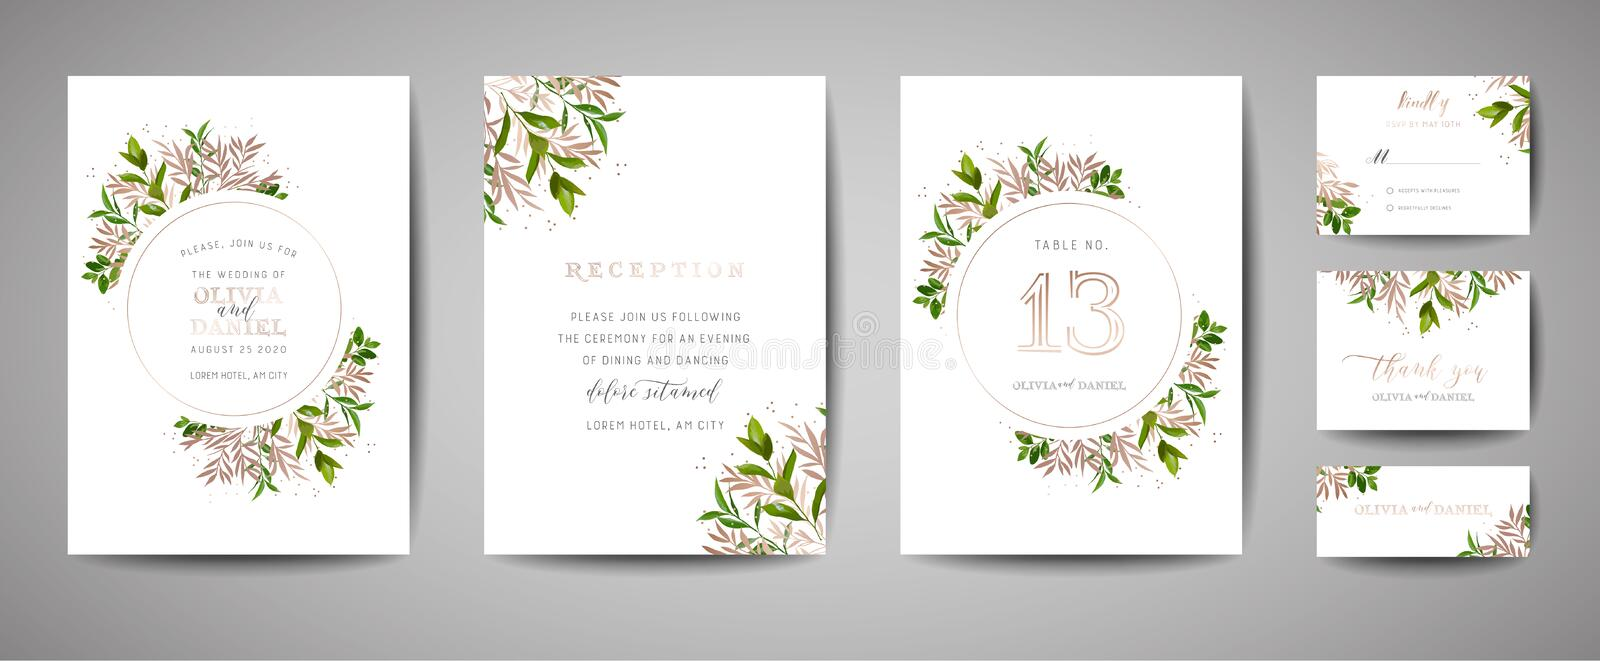 Rustical Floral Vintage Wedding Save the Date, Invitation Cards Collection with Gold Foil. trendy cover, graphic poster vector illustration